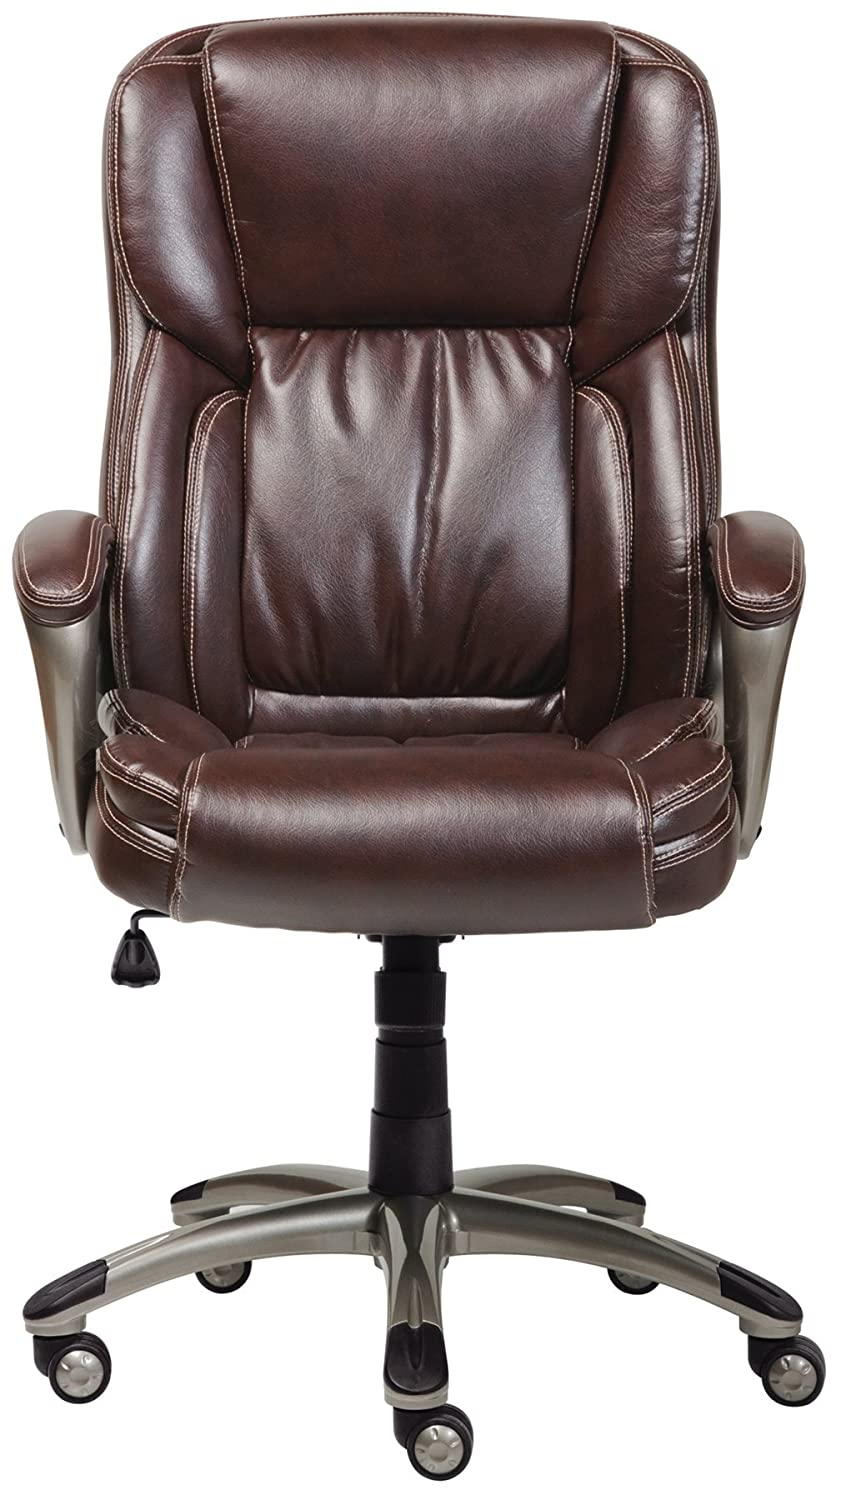 Lane office chairs - Amazon Com Serta Works Executive Office Chair Bonded Leather Brown Kitchen Dining